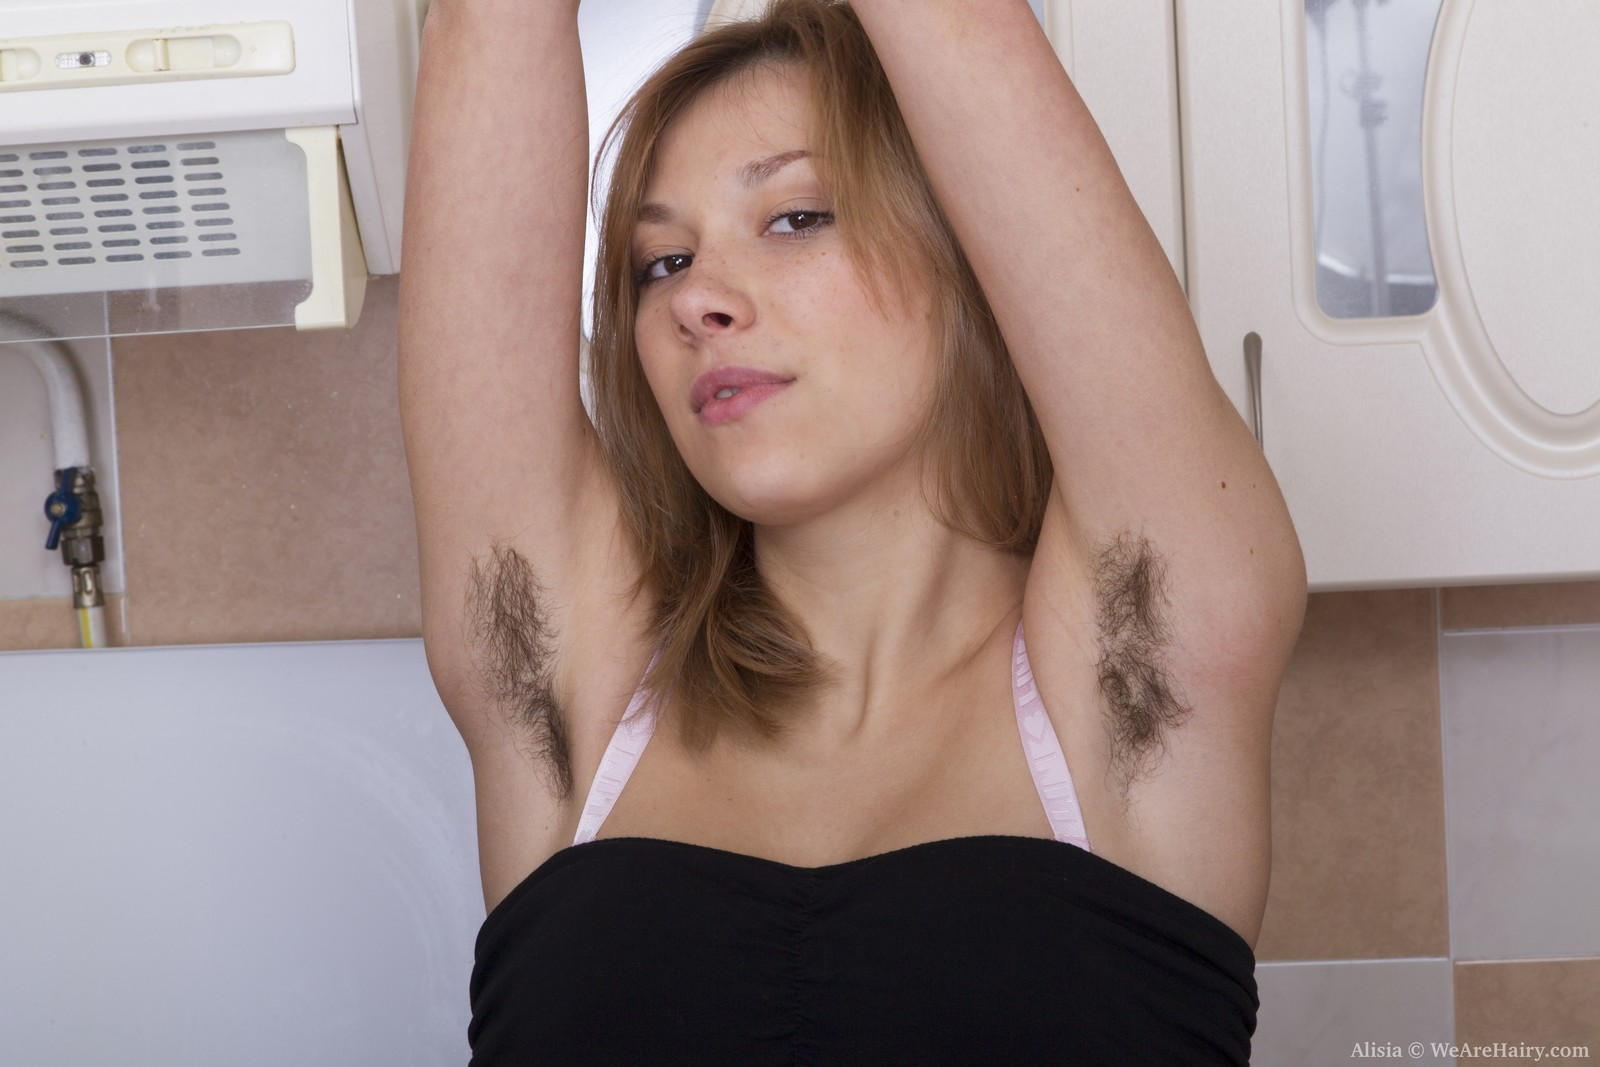 hairy pertty girls - hairy japan girls, pale skin freckles hairy ...